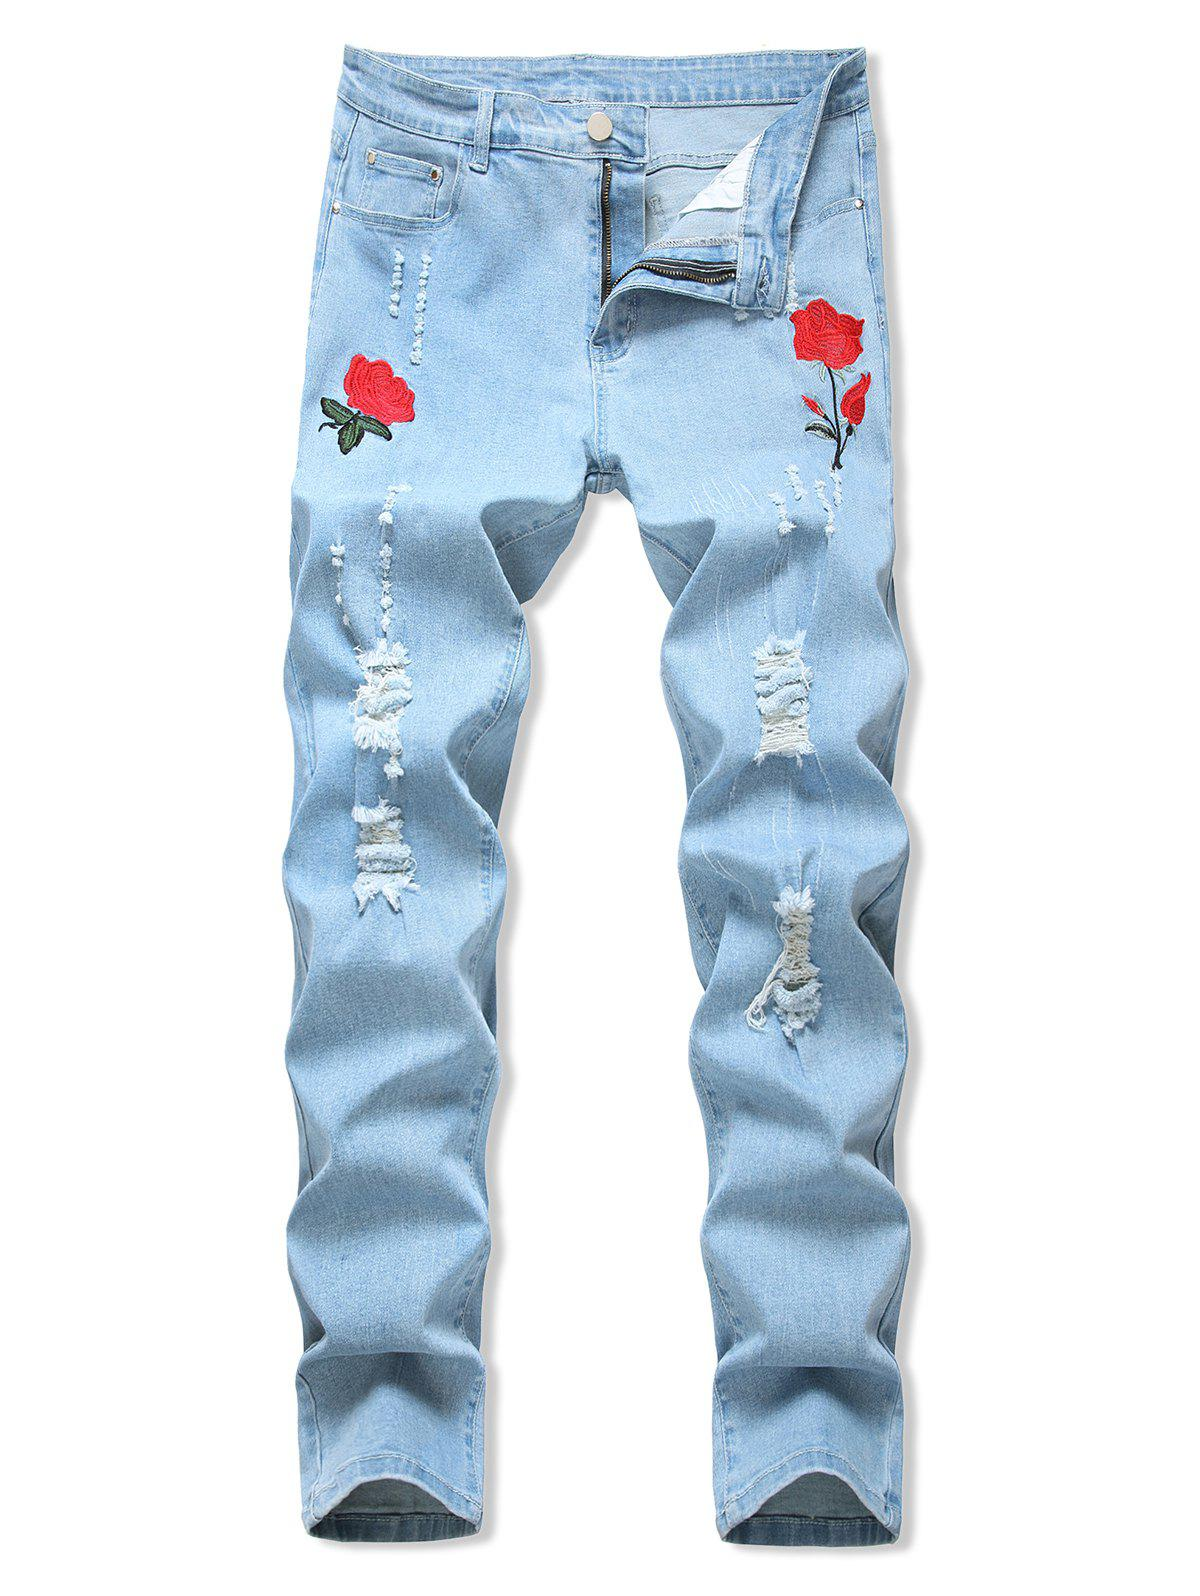 Floral Embroidery Ripped Design Jeans - LIGHT BLUE 40